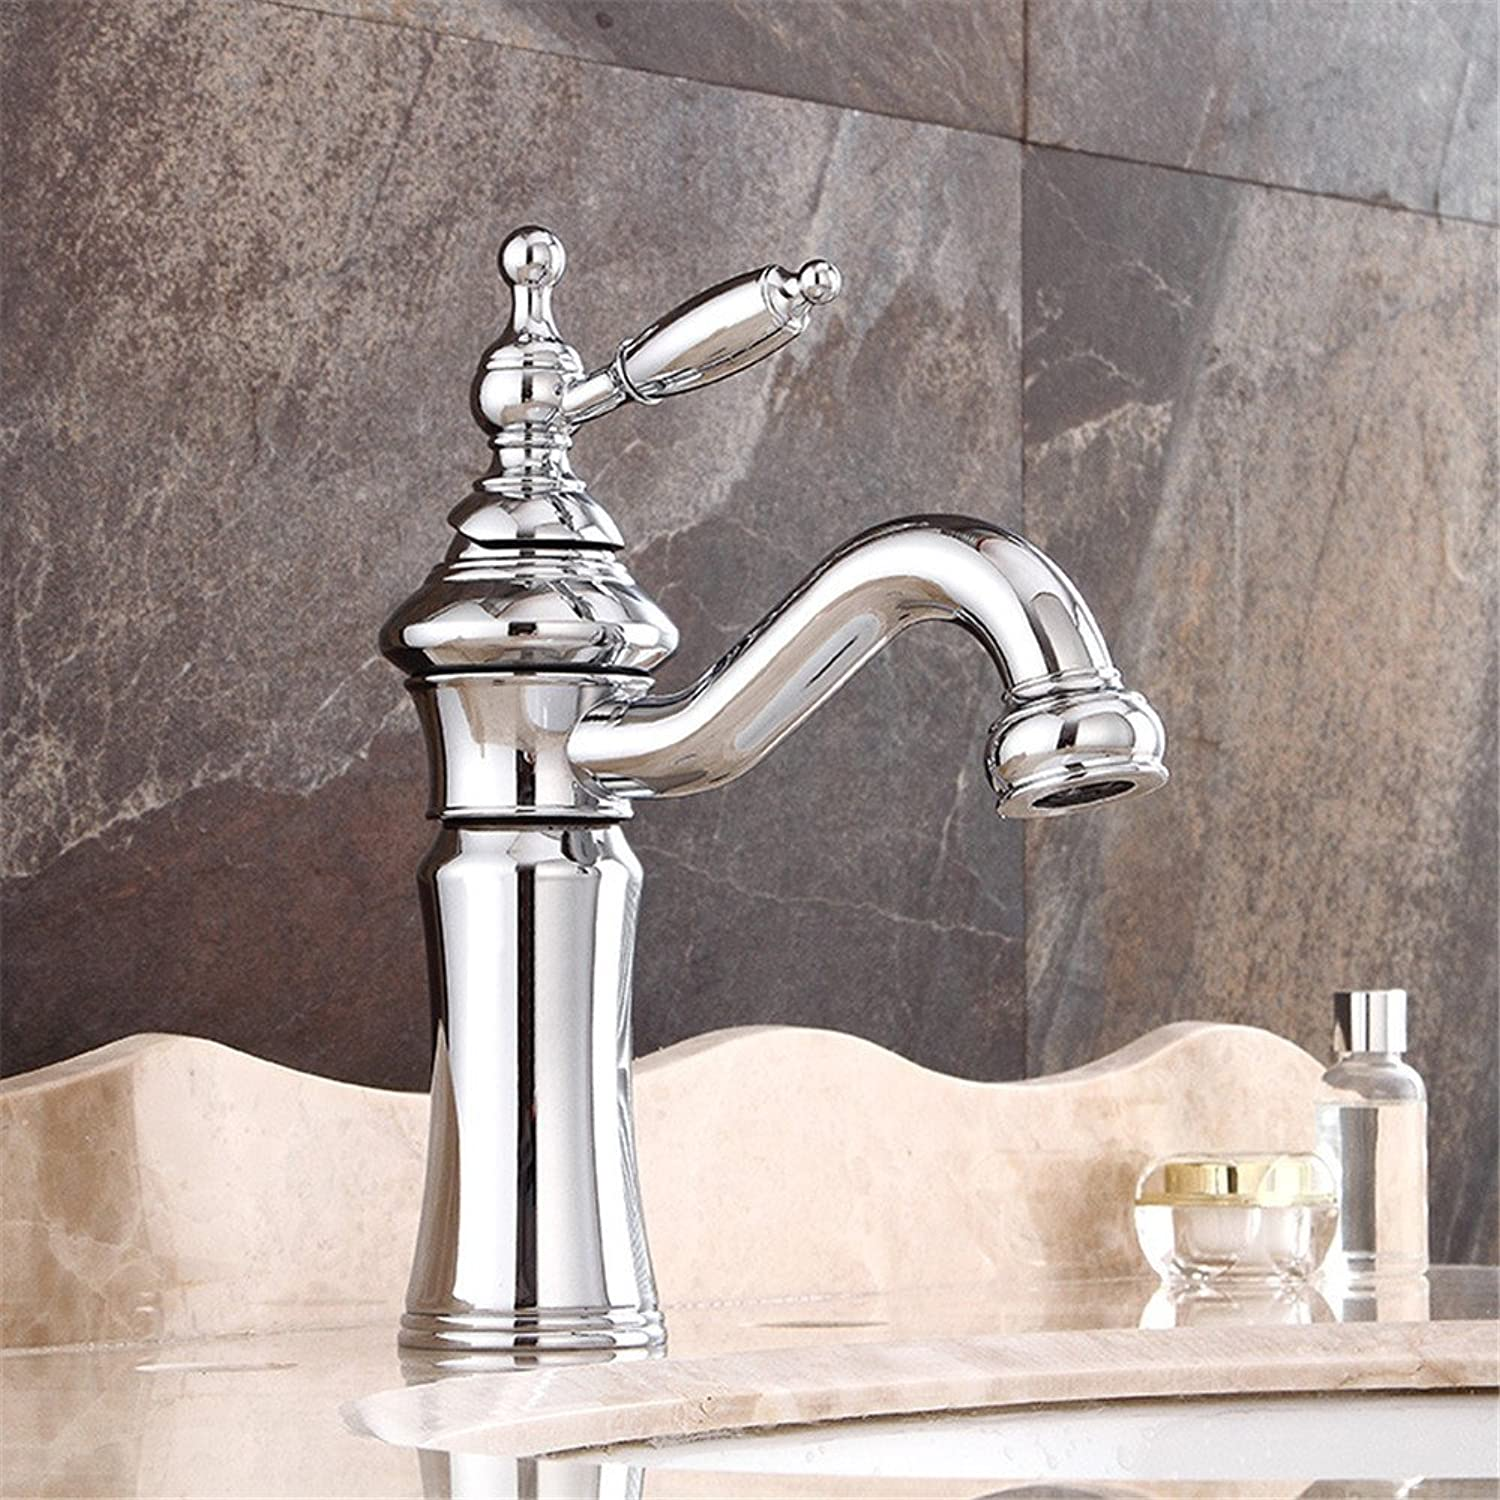 Bijjaladeva Antique Bathroom Sink Vessel Faucet Basin Mixer Tap The rise in water faucet antique basin faucet full Copper Express Open taps a